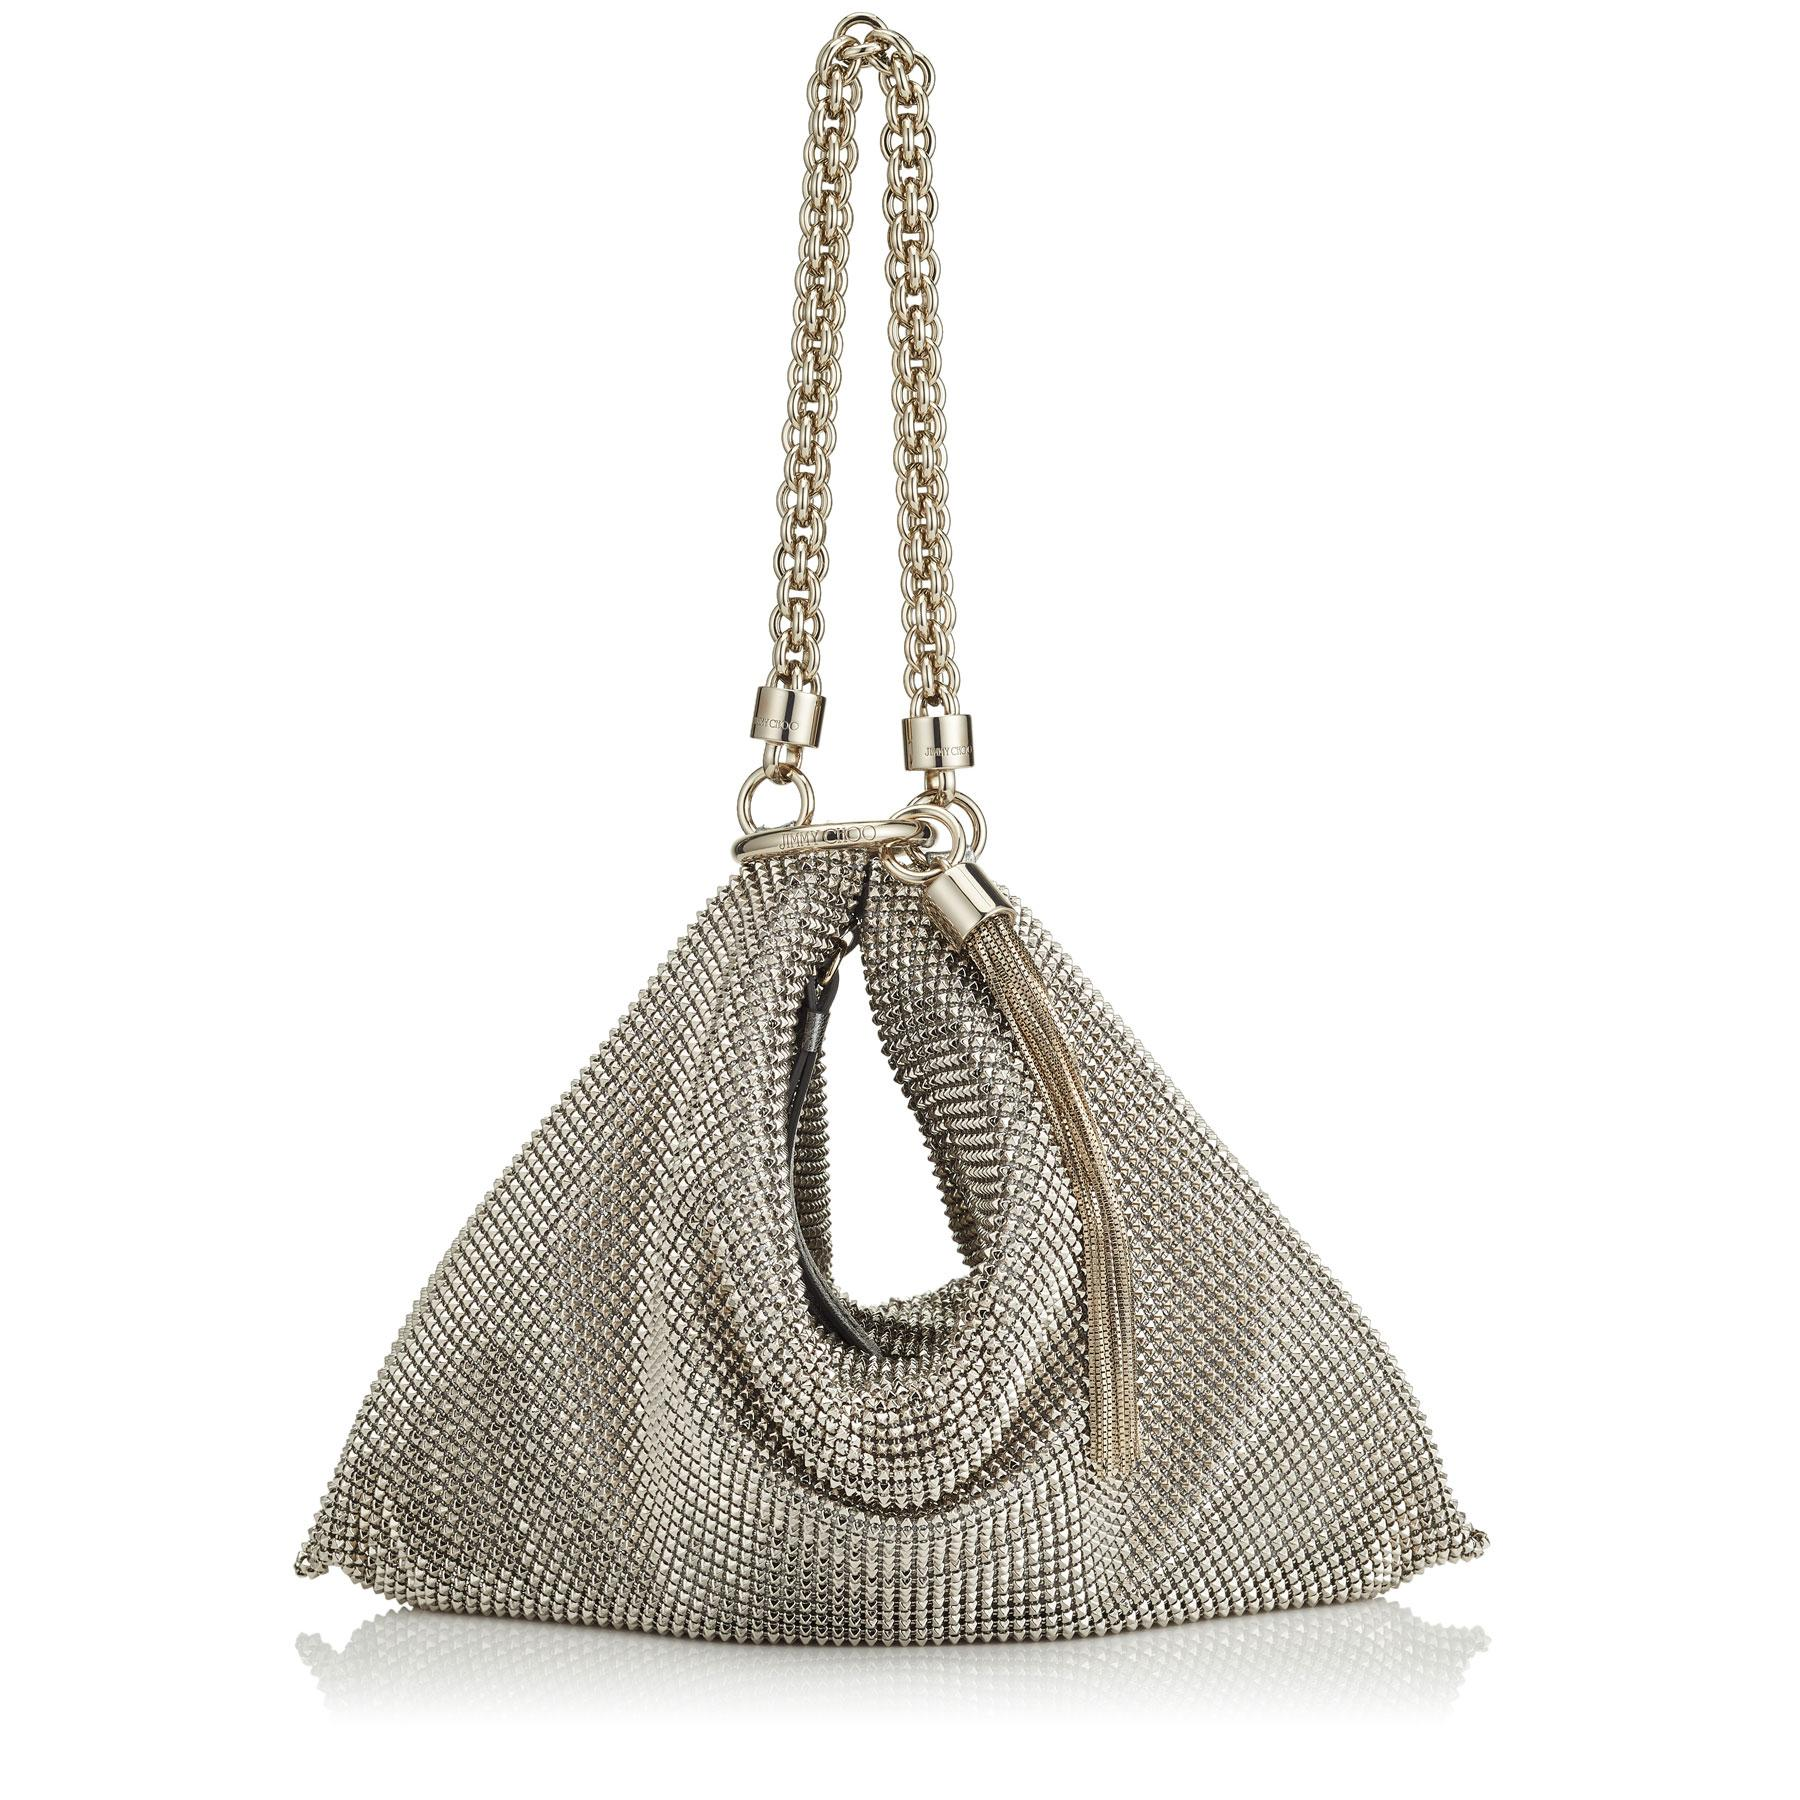 choose original sneakers discount coupon Women's Metallic Callie Silver Chain Mail Mesh Clutch Bag With Chain Strap